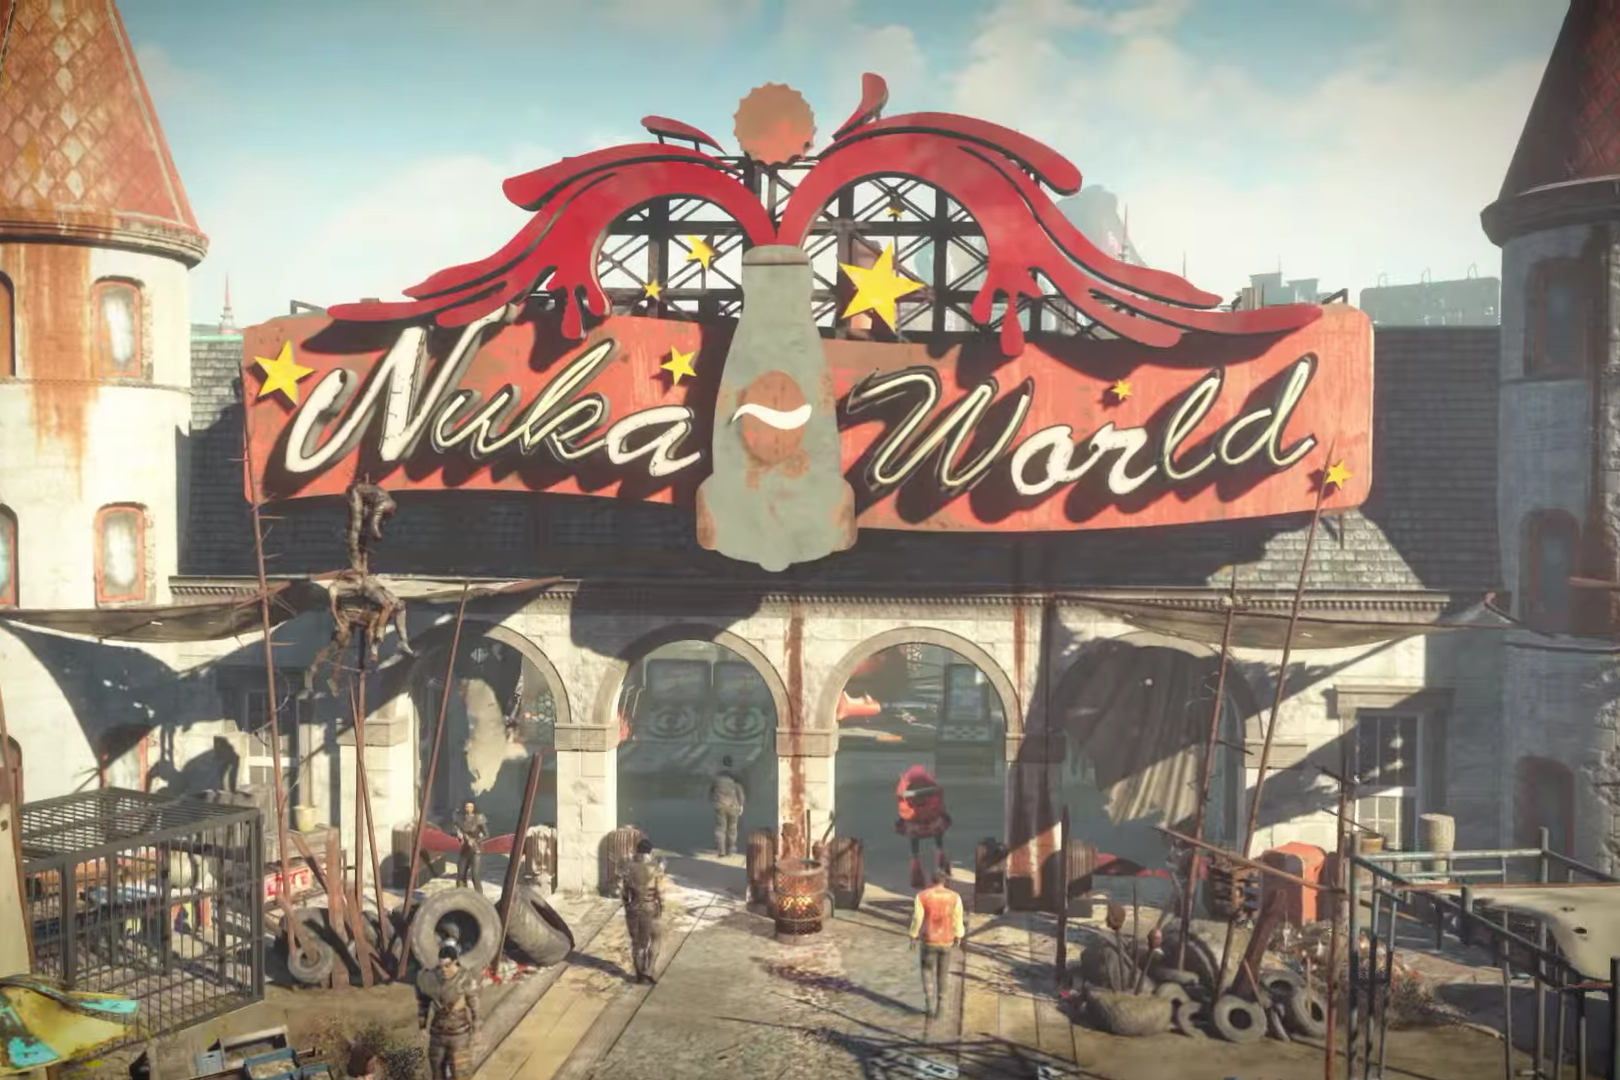 Fallout 4 season pass hindsight igeekout net for Fallout 4 mural